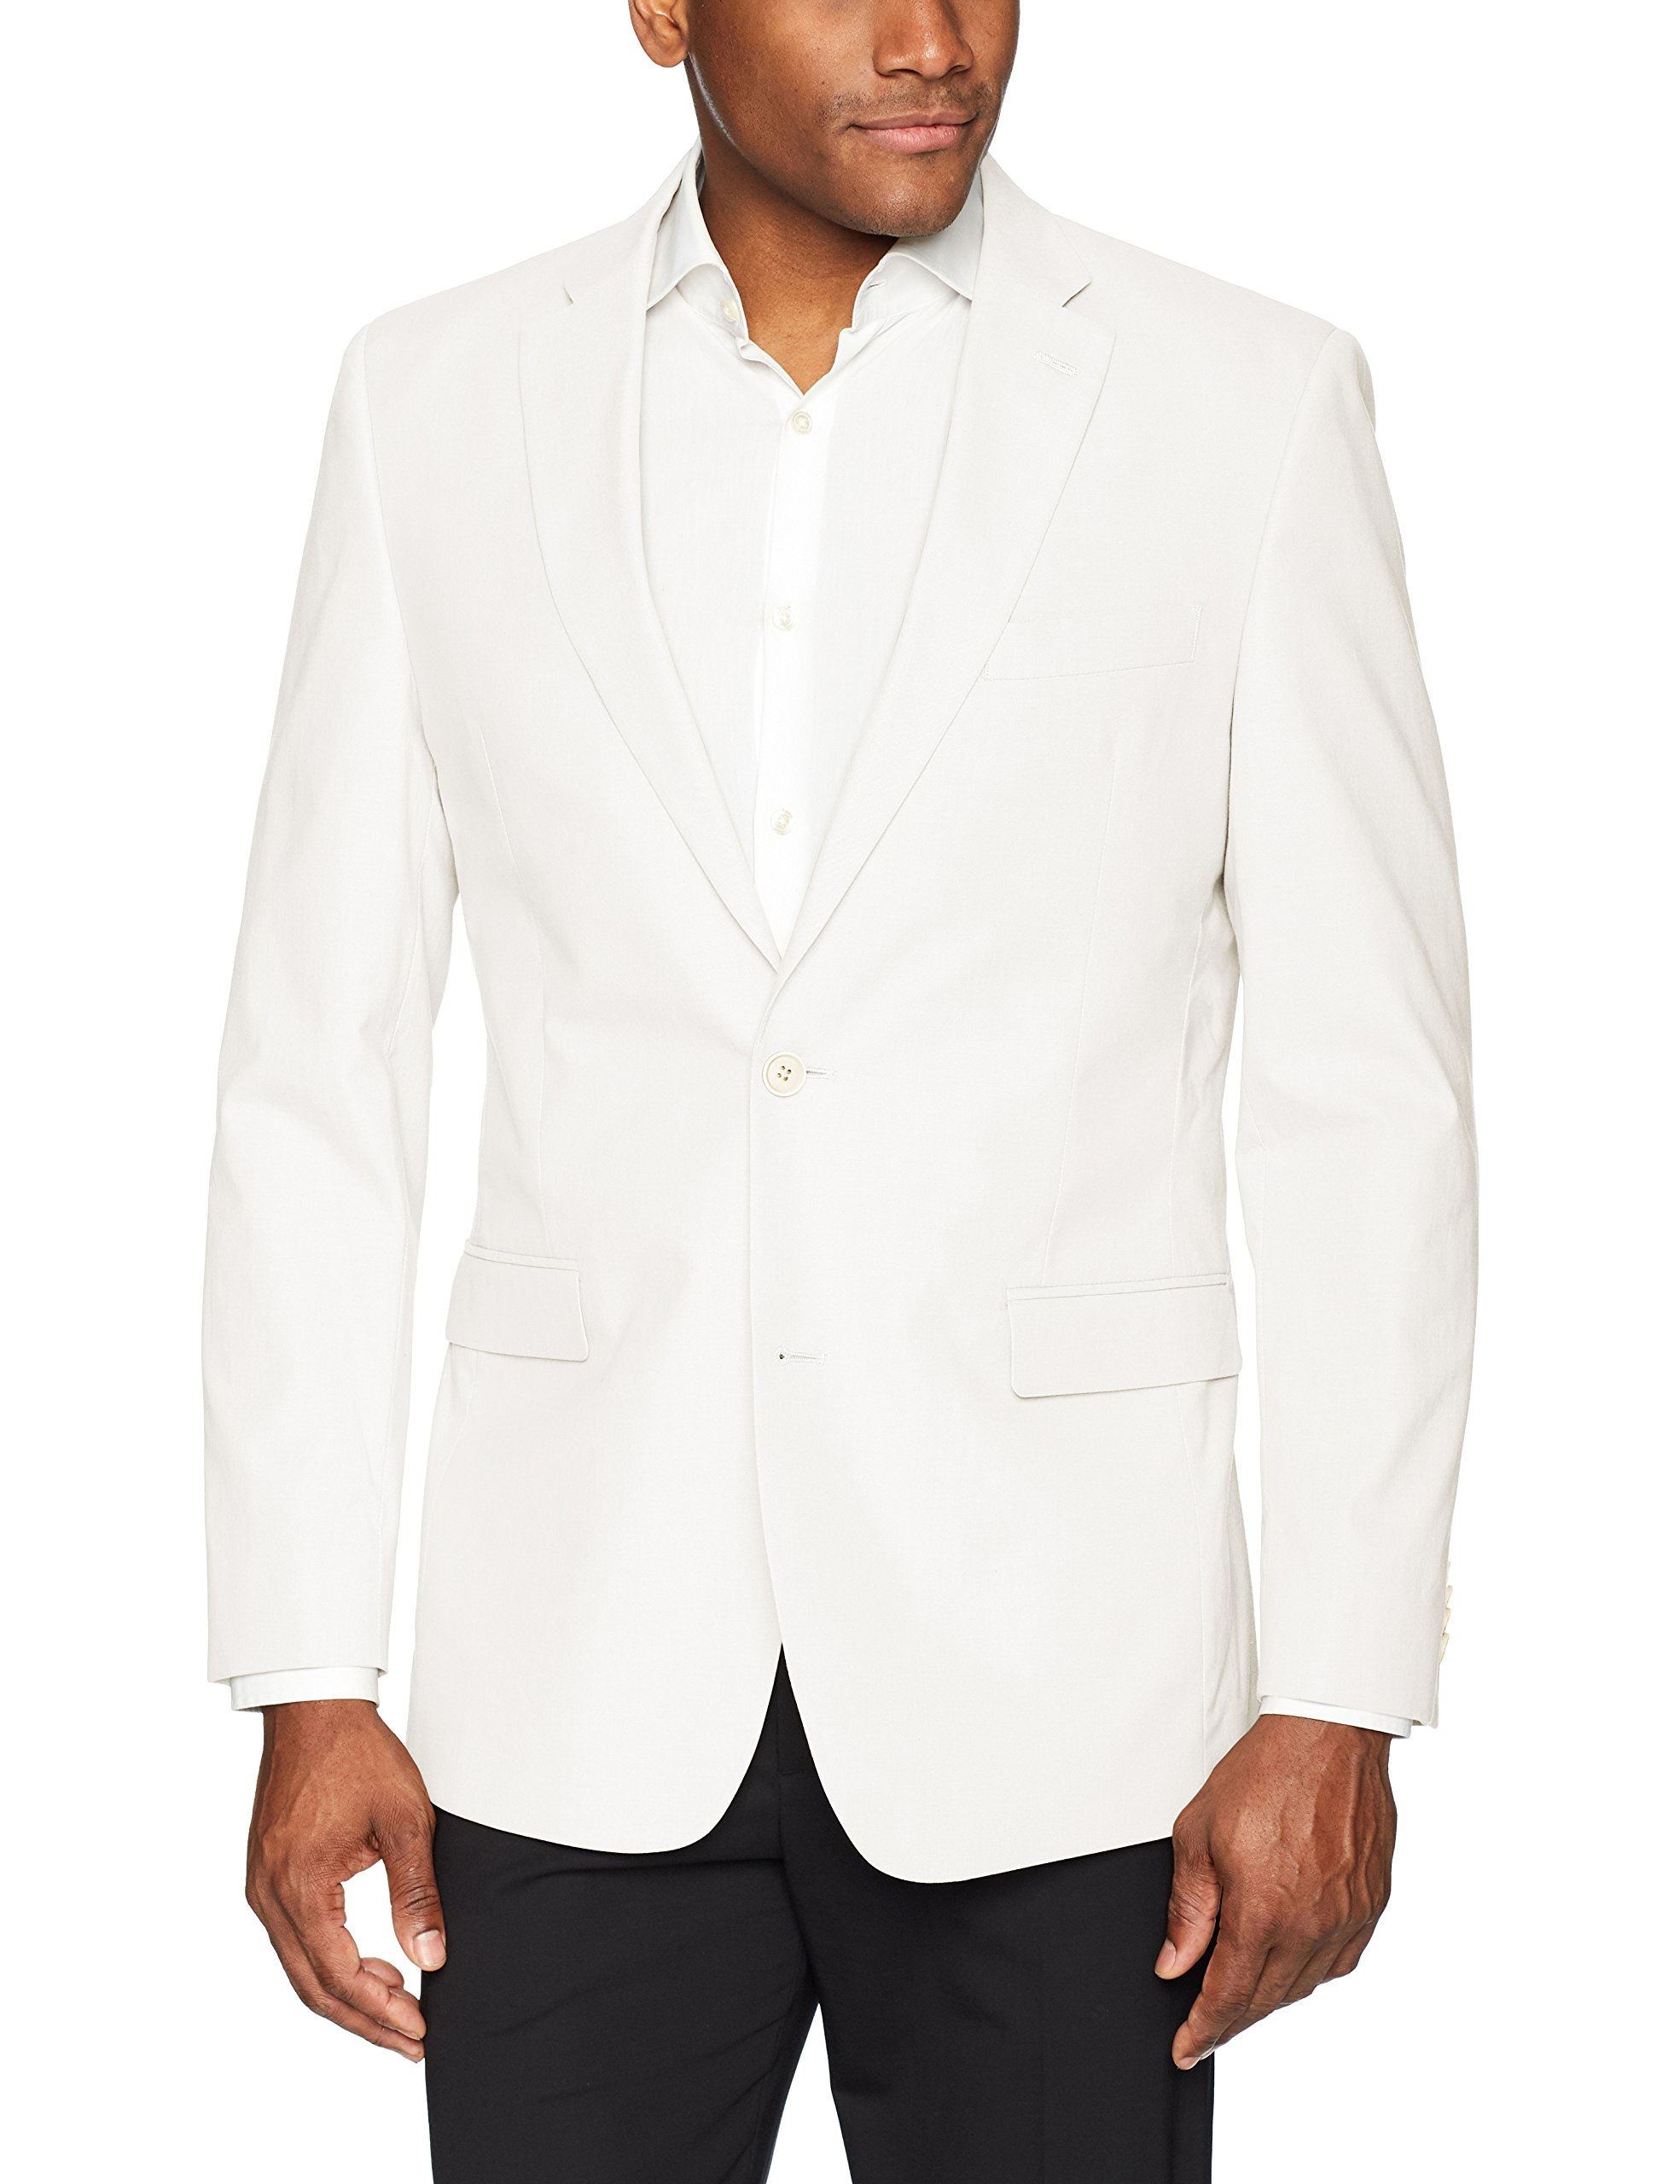 Tommy Hilfiger Men's Big and Tall Modern Fit White Linen Suit Separate (Blazer and Pant), 46L by Tommy Hilfiger (Image #1)